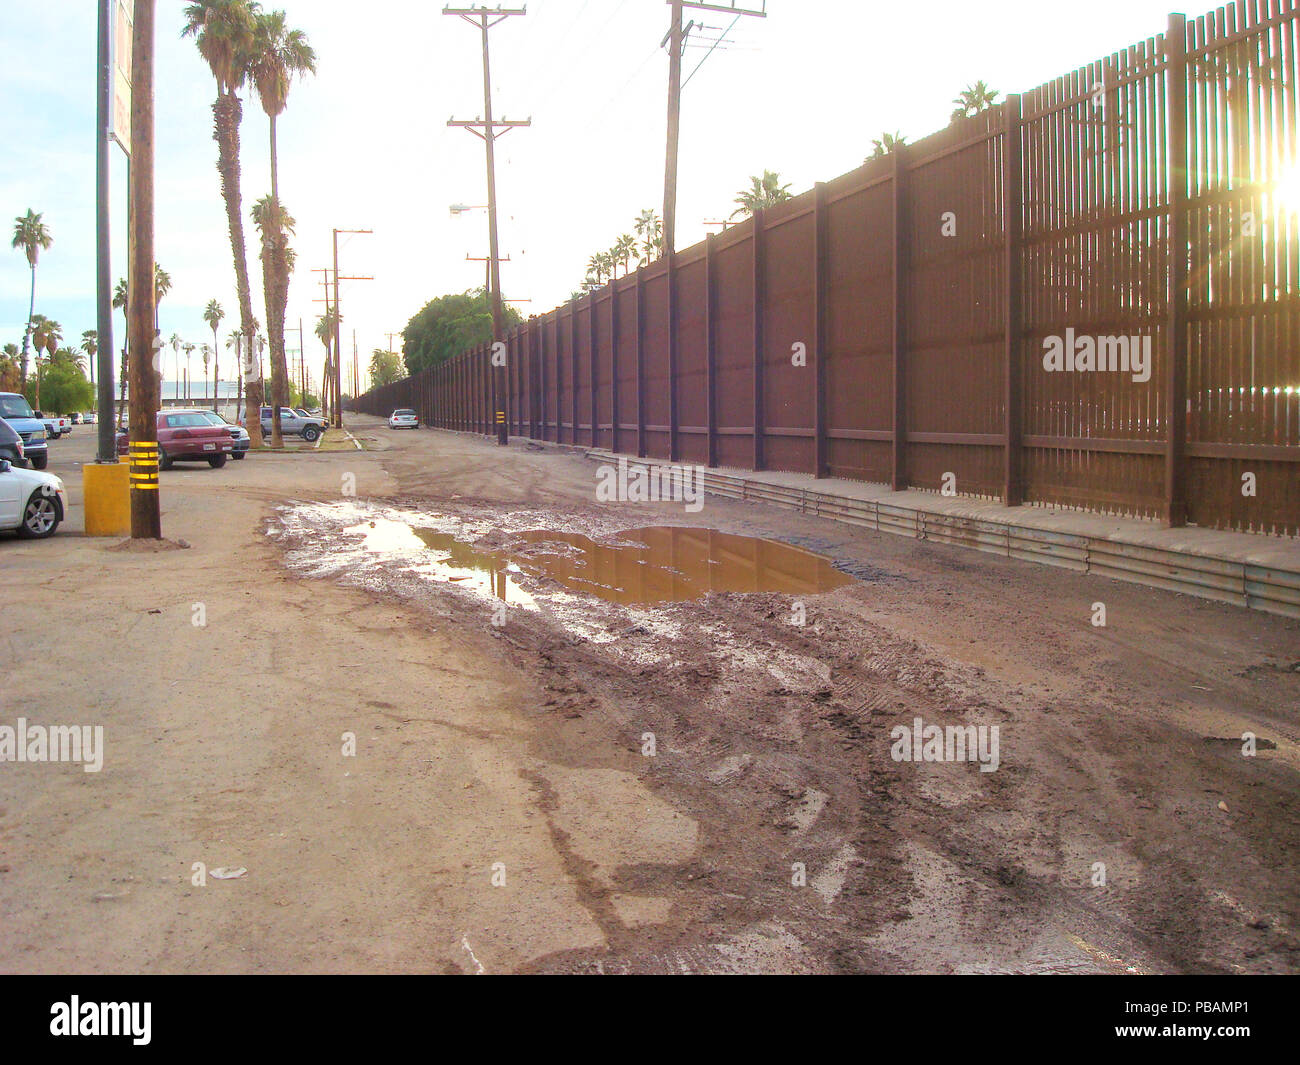 Sun breaking through the border fence between Calexico, California, United States and Mexicali, Baja California, Mexico in 2010. Stock Photo